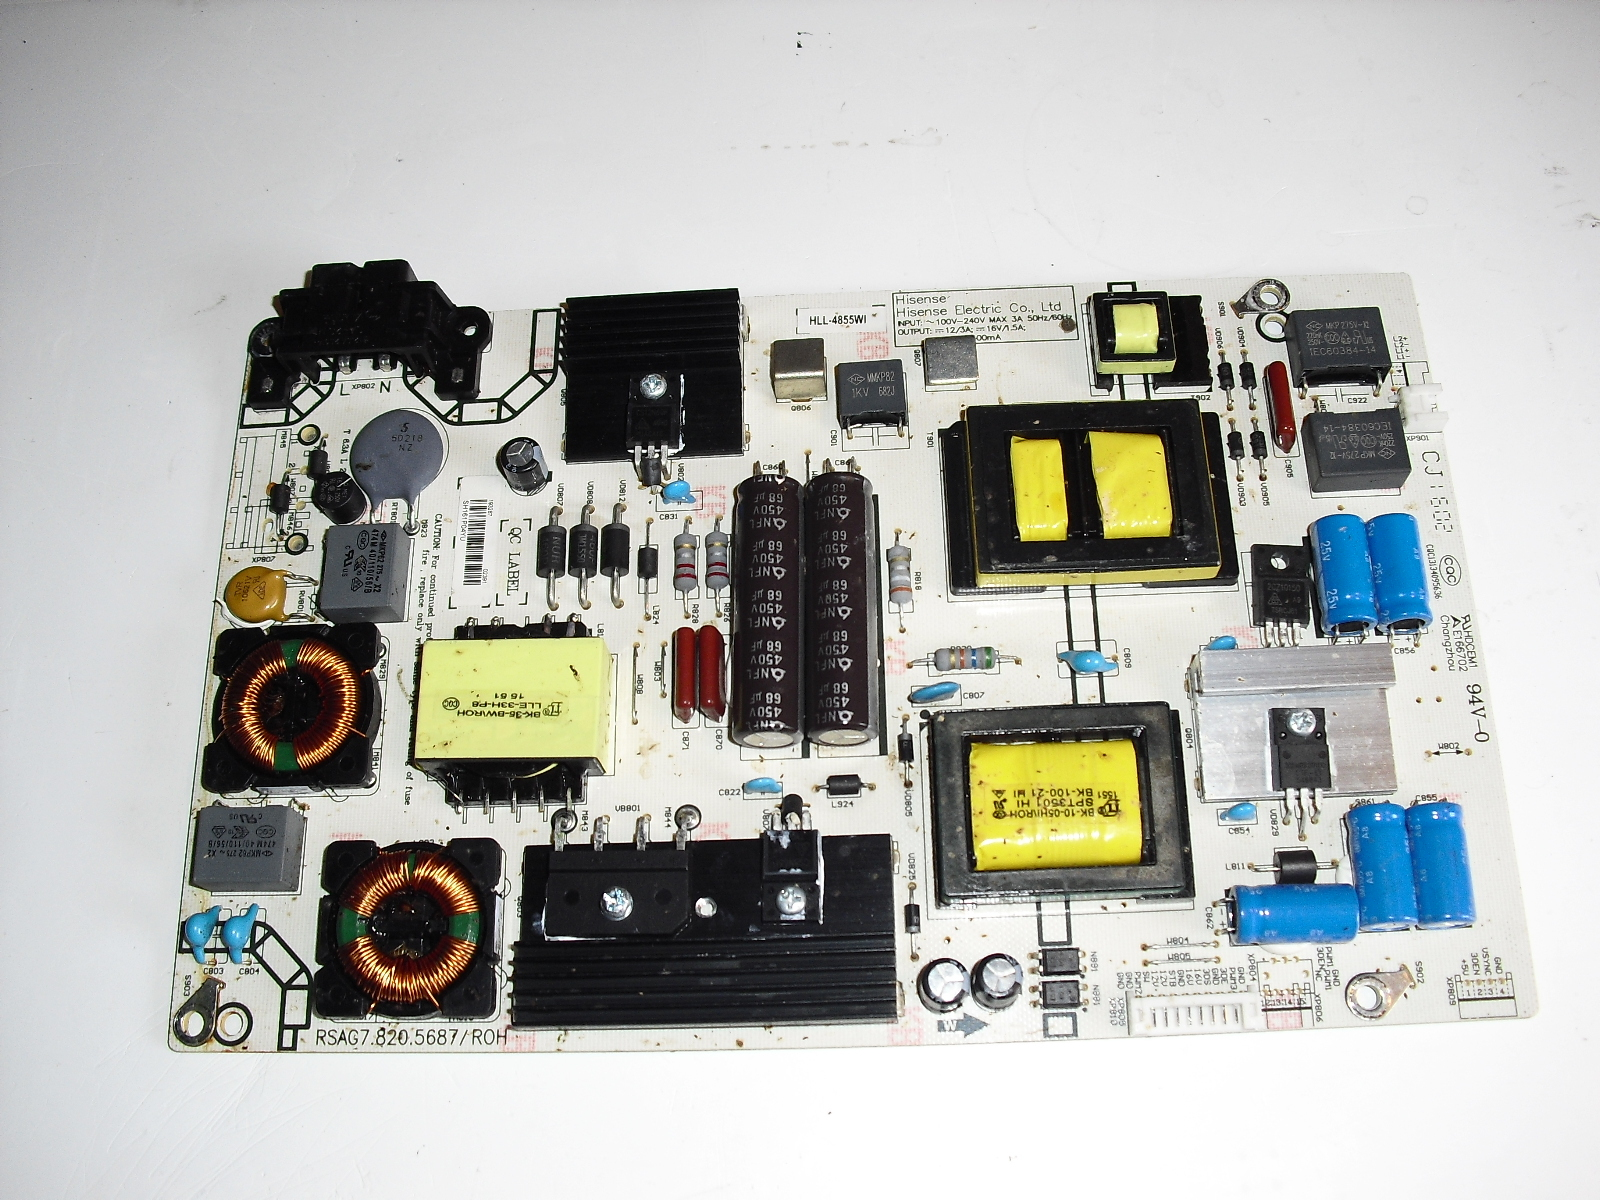 Primary image for rsag7.820.5687/roh   power  board  for  hisense   50hc5